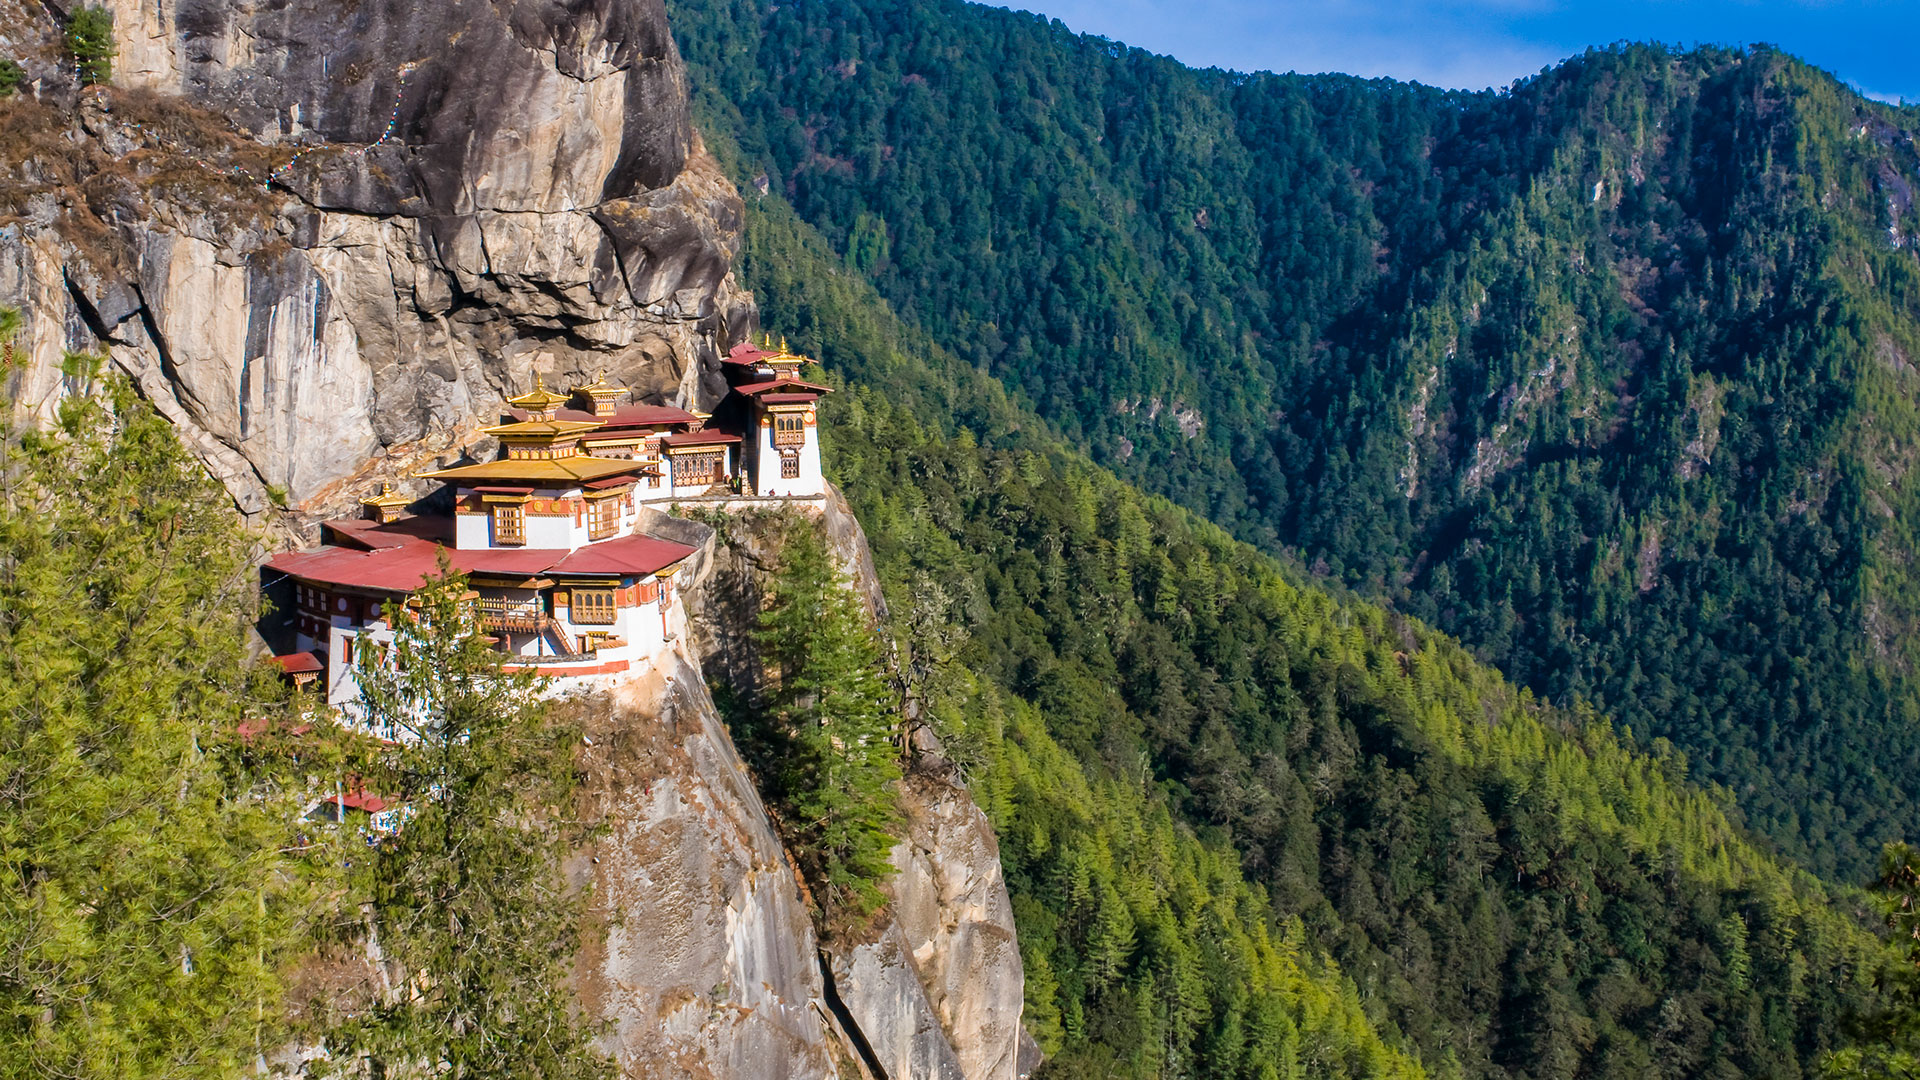 Tiger's Nest monastery perched on a cliff near the Paro Valley, Bhutan